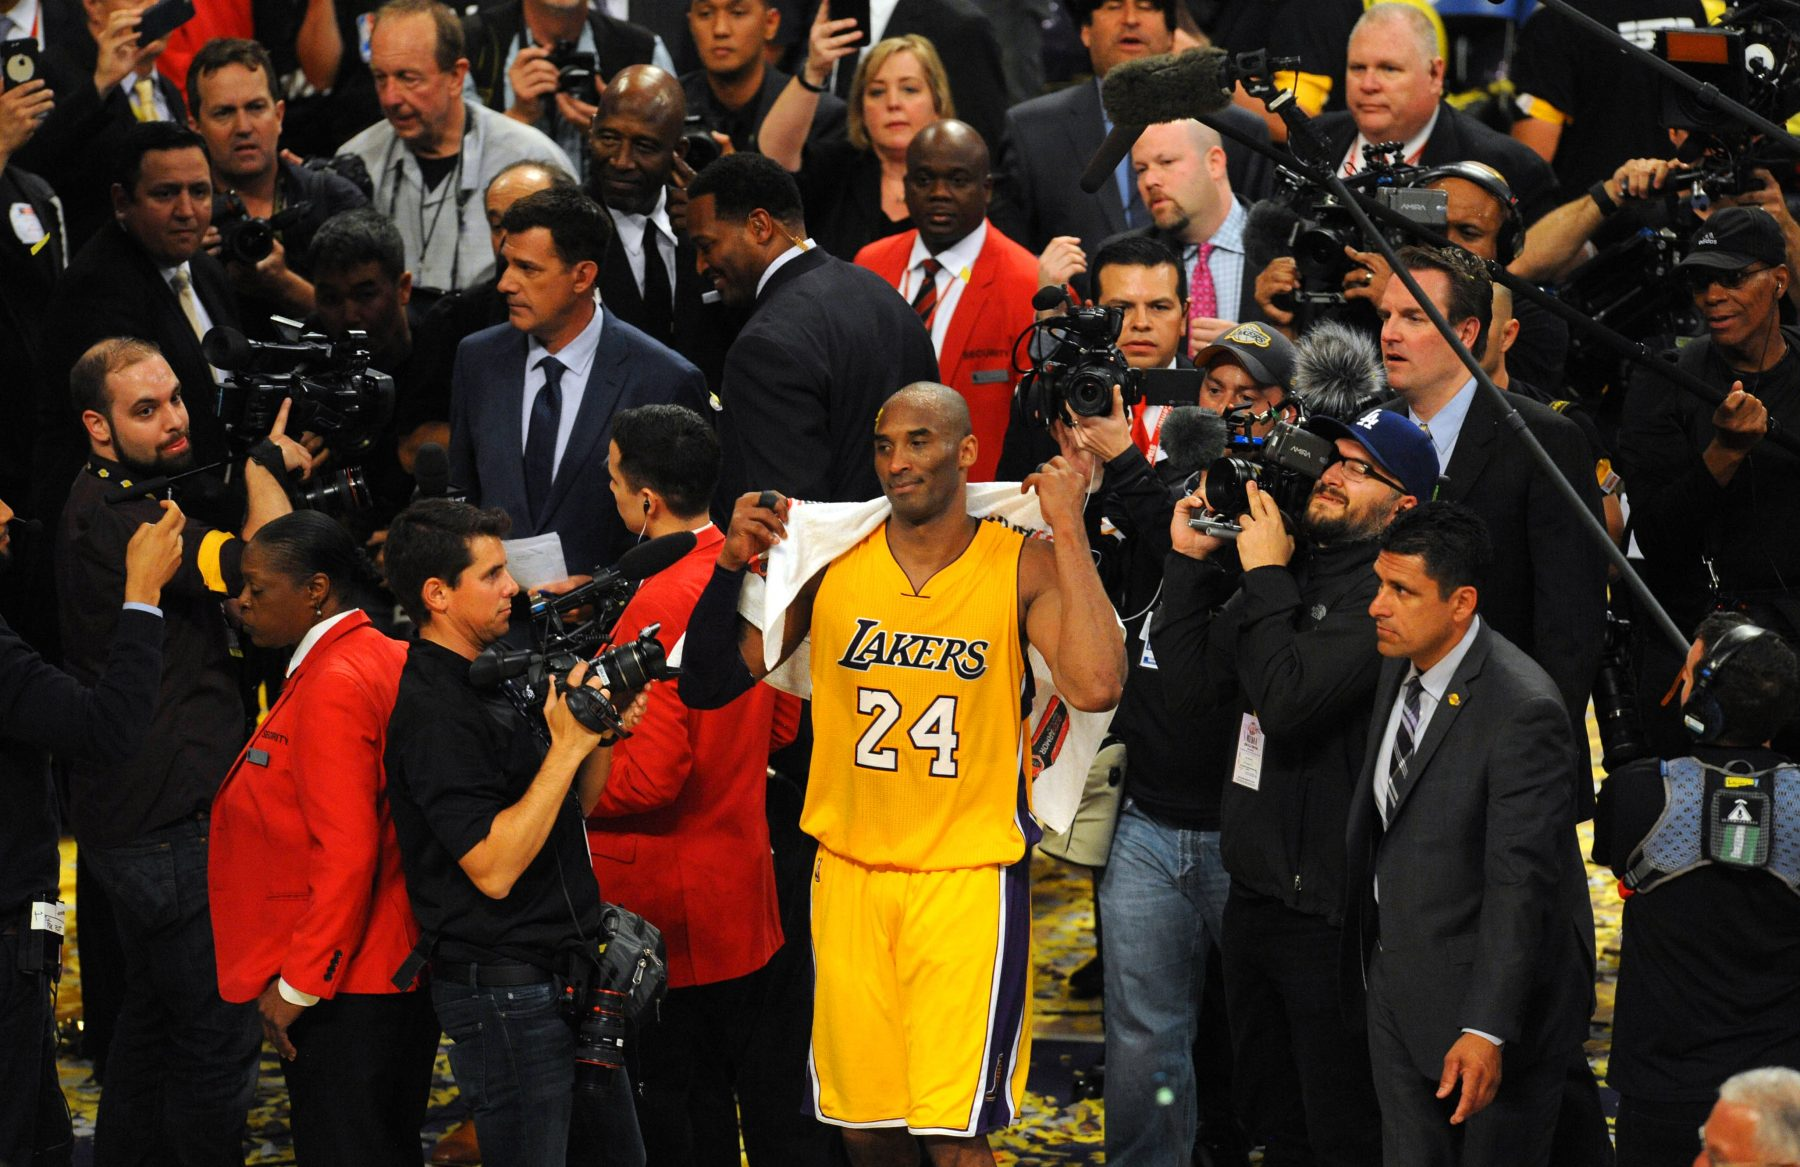 Kobe Bryant's farewell speech towel sold for over $30,000 at auction